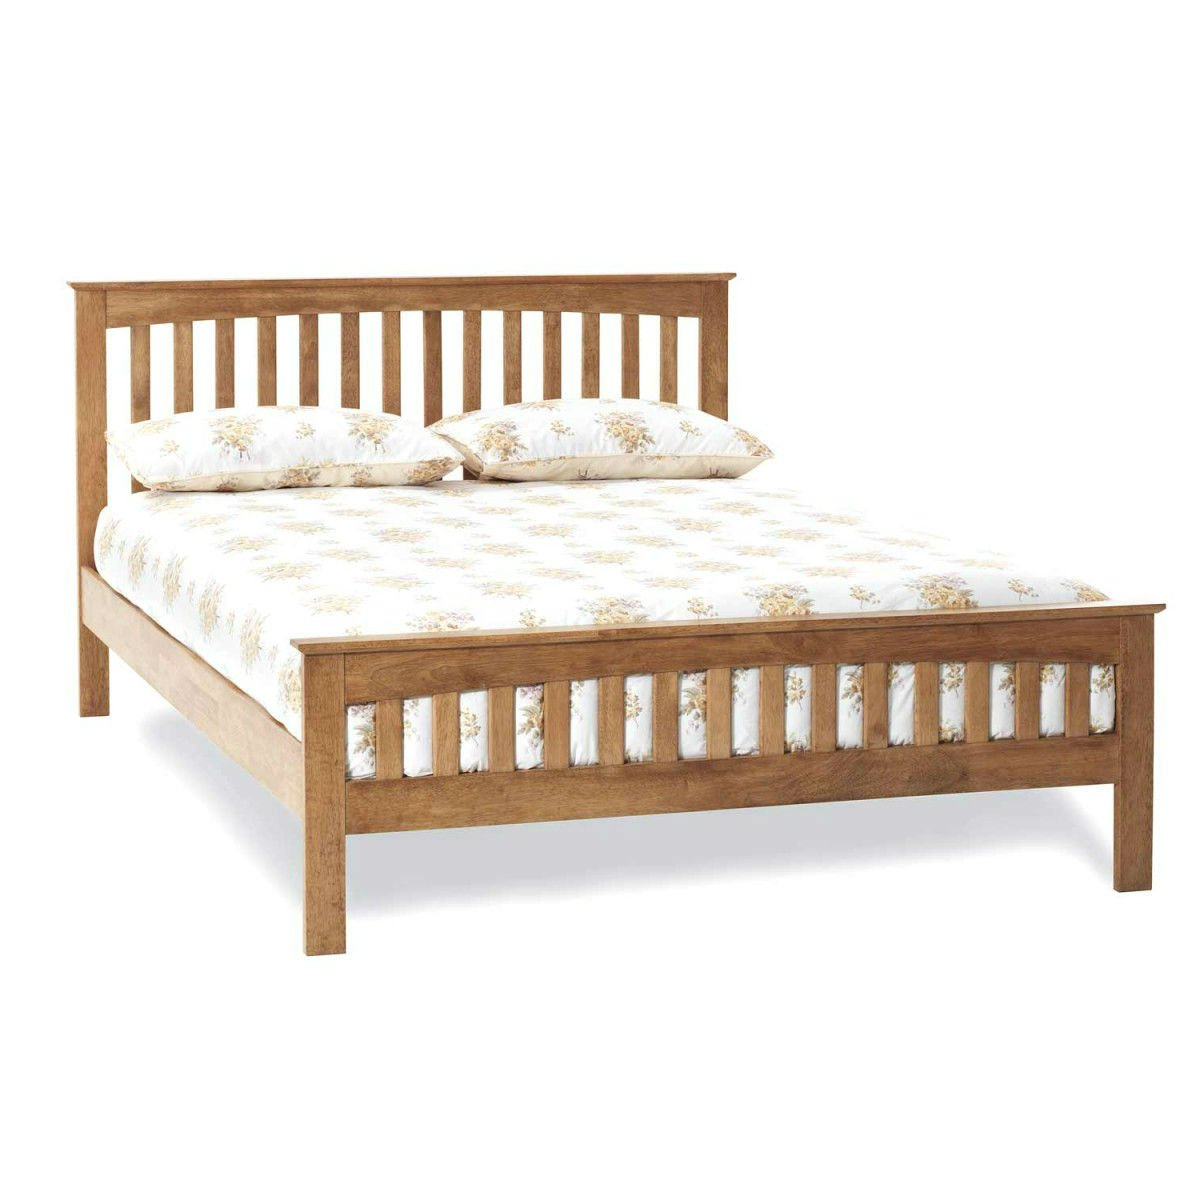 Wooden Bed Frame with Slatted Headboard and Footend - Hevea Bedstead ...